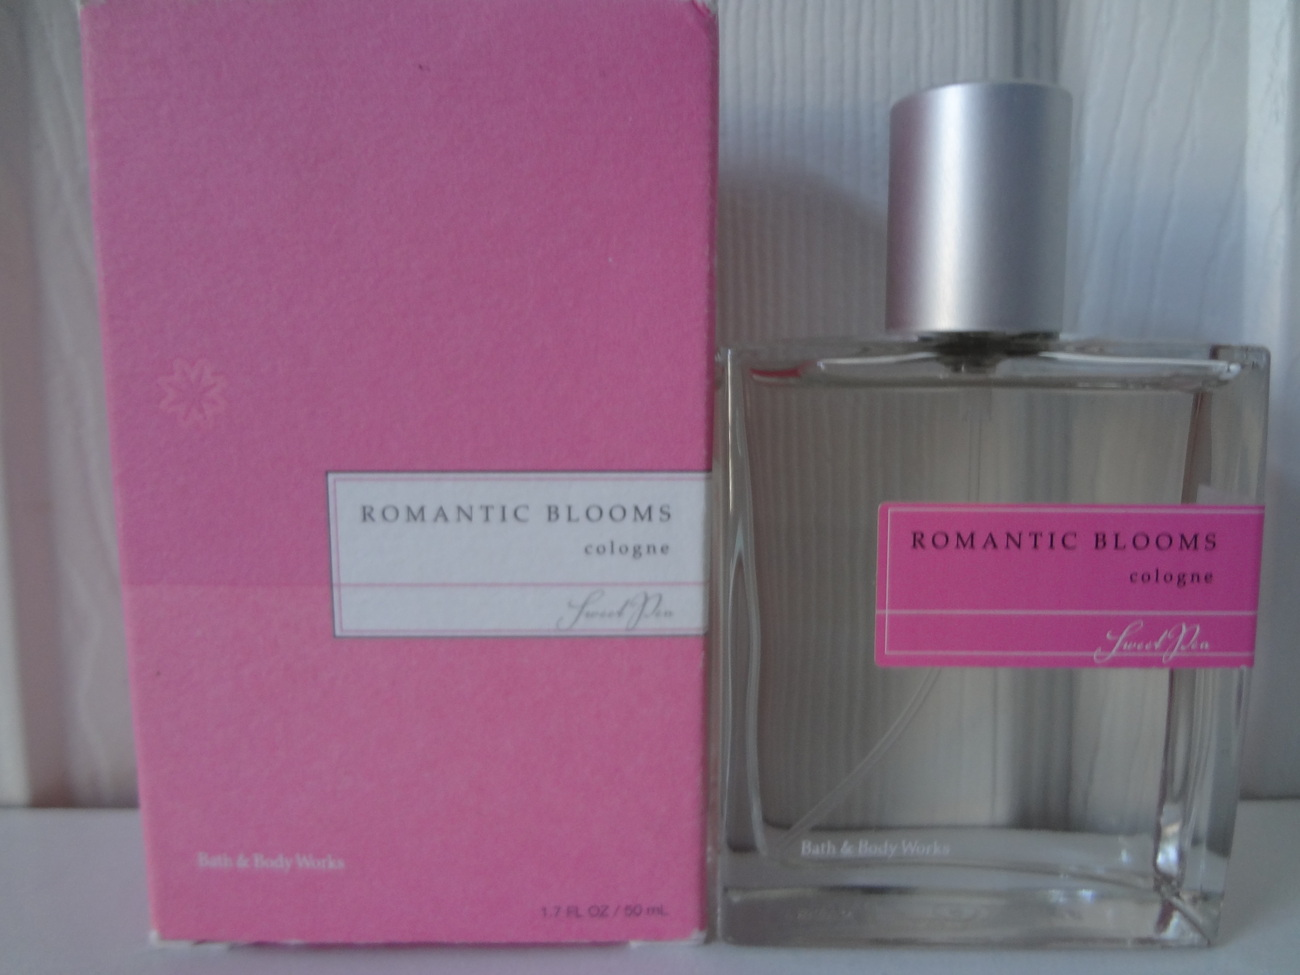 Bath & Body Works Sweet Pea Romantic Blooms Cologne 1.7 oz / 50 ml